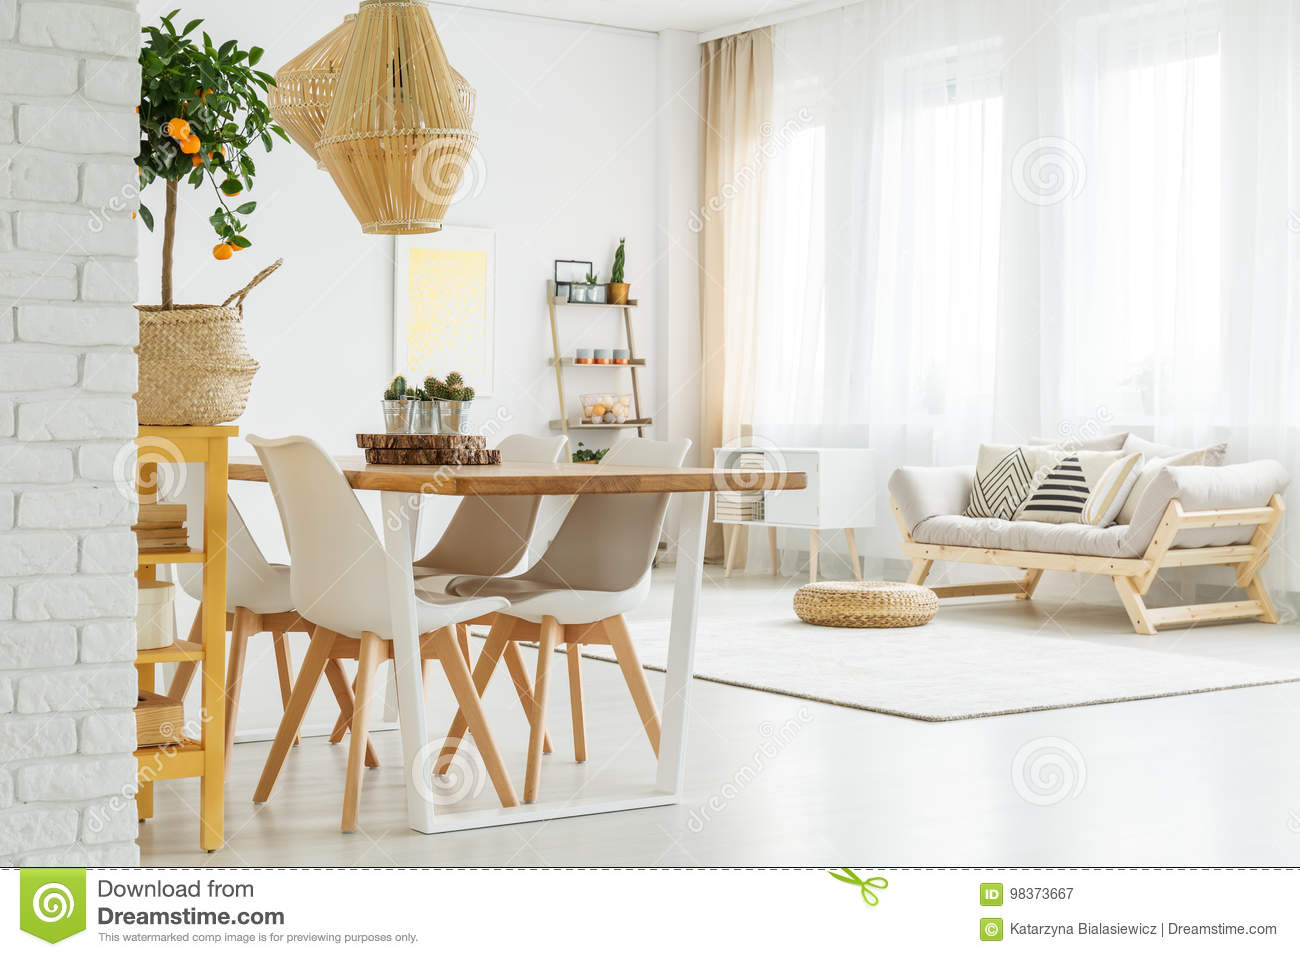 Open space with dinner table, white chairs and comfortable, grey sofa